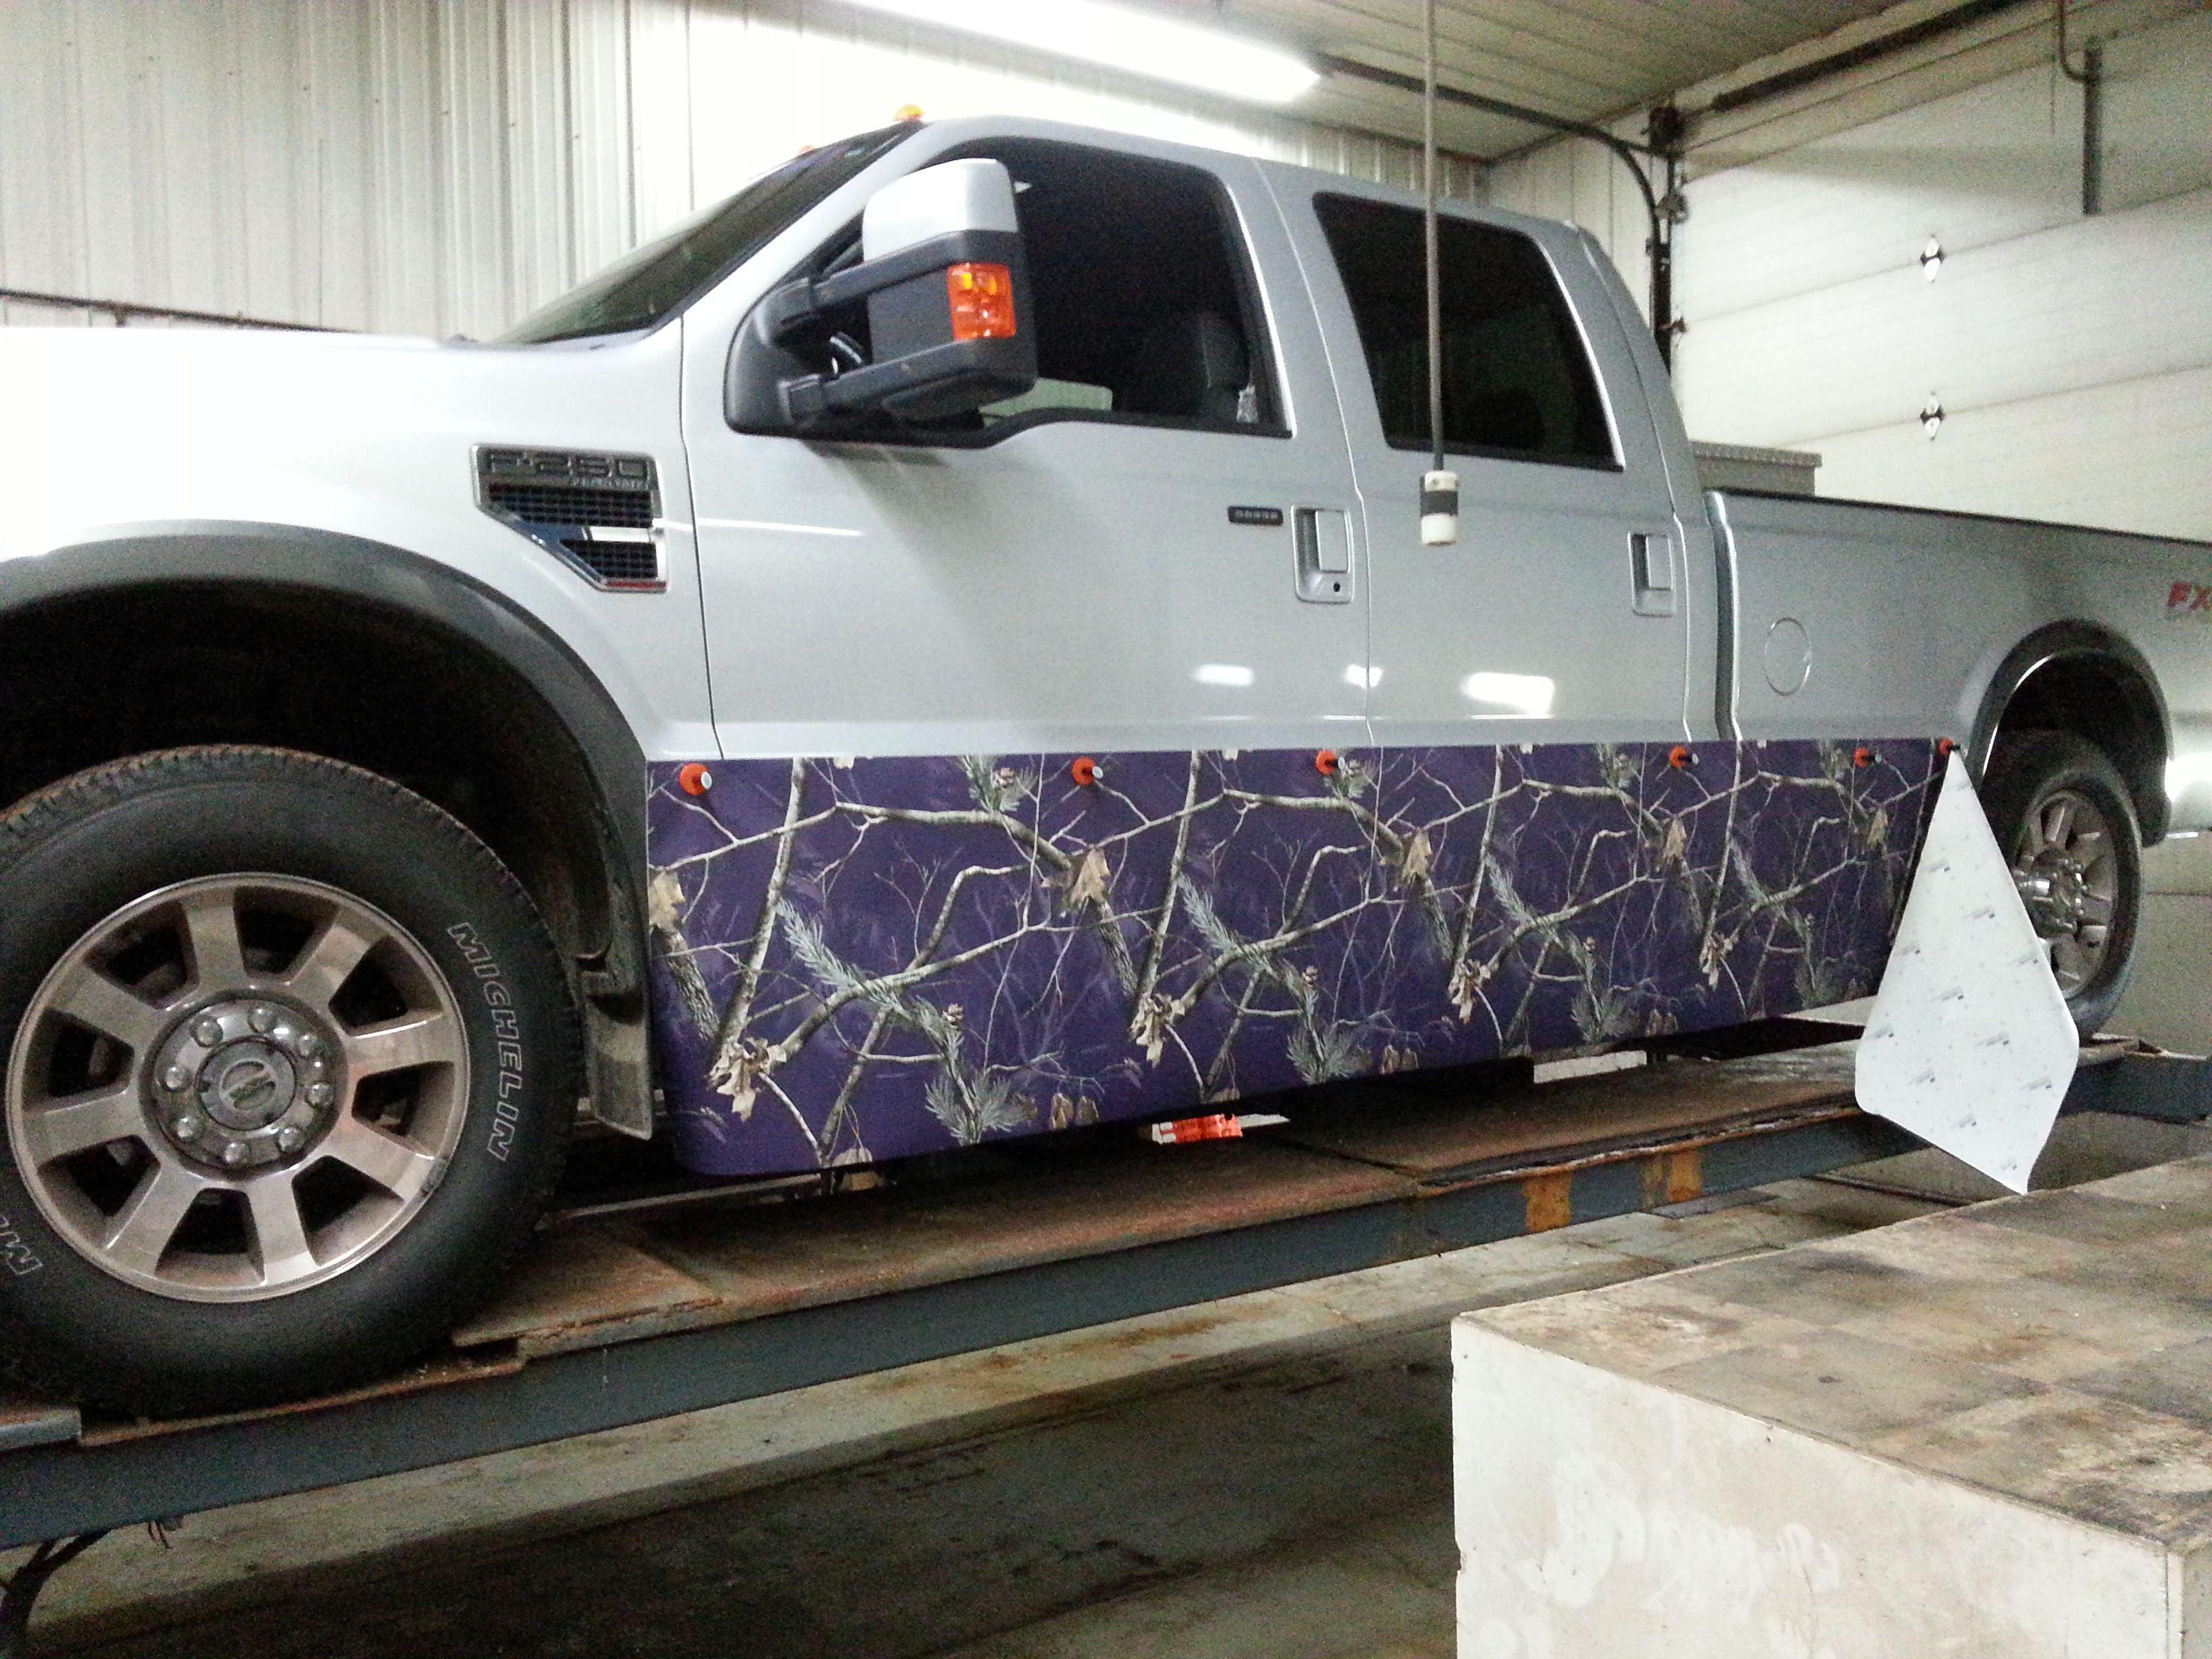 This Cadillac Wanted To Make Her Truck Pretty